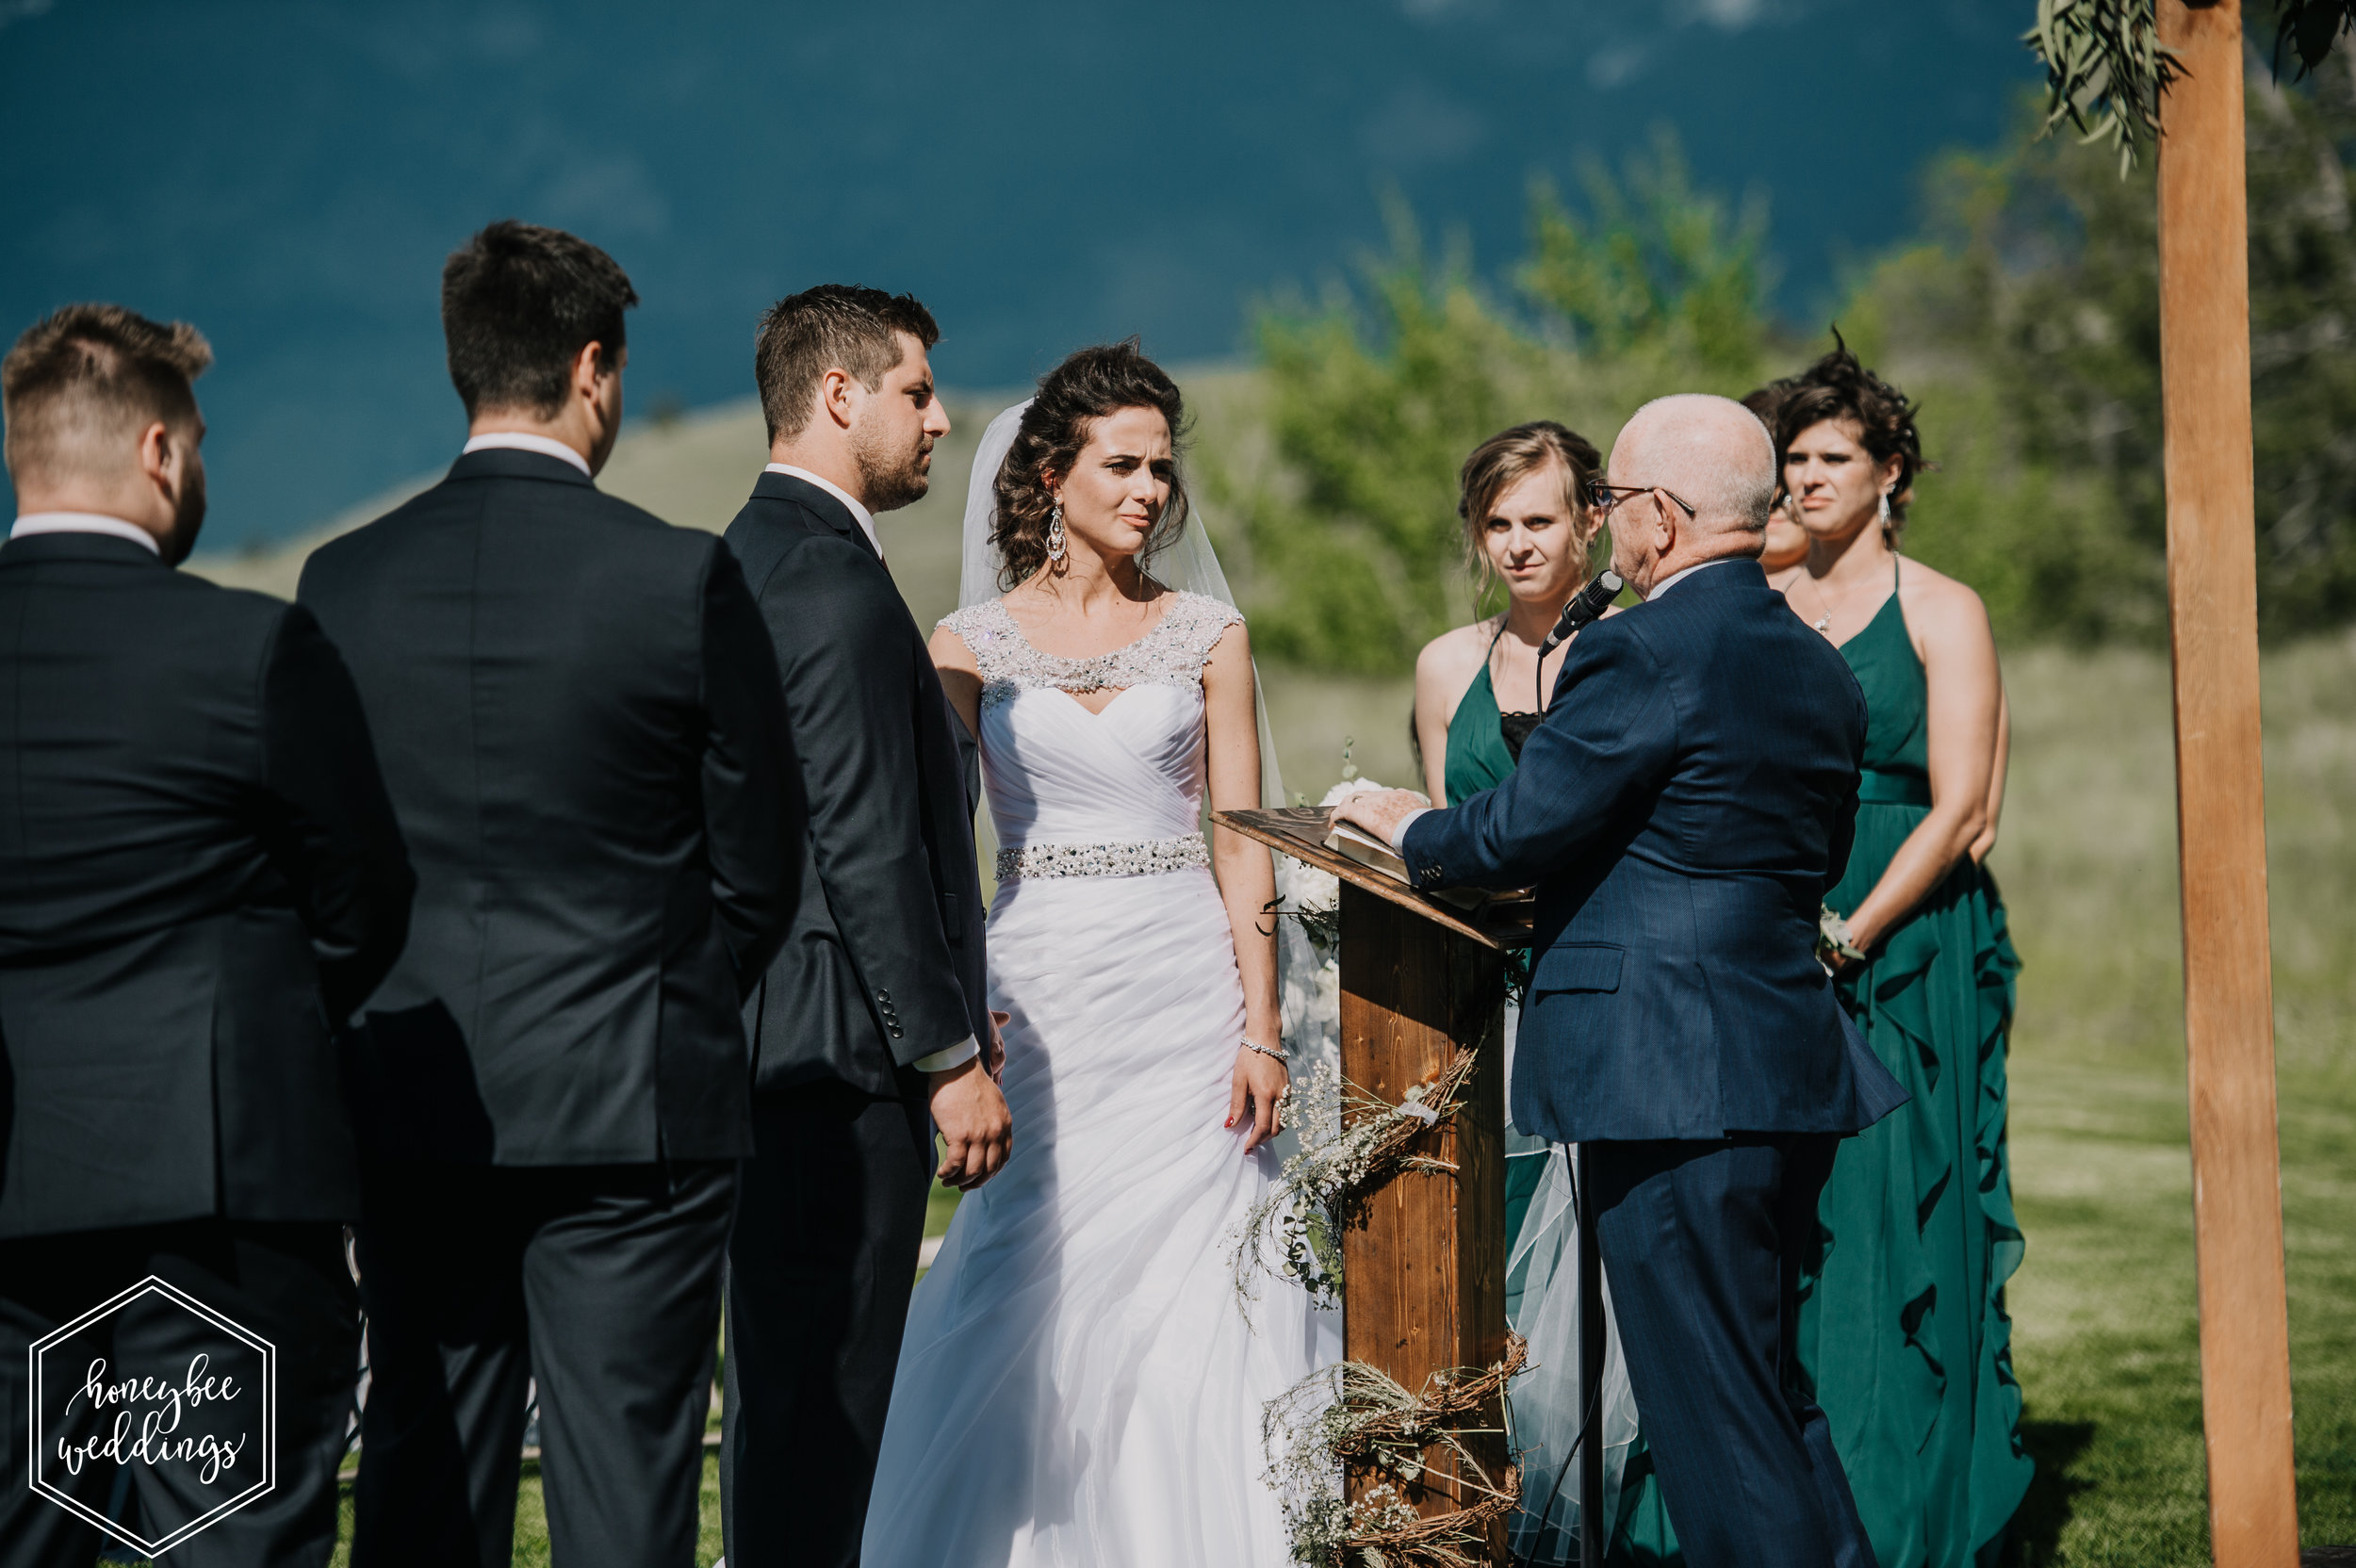 108 Chico Hotsprings Wedding_Bowdino 2018-3415-2.jpg